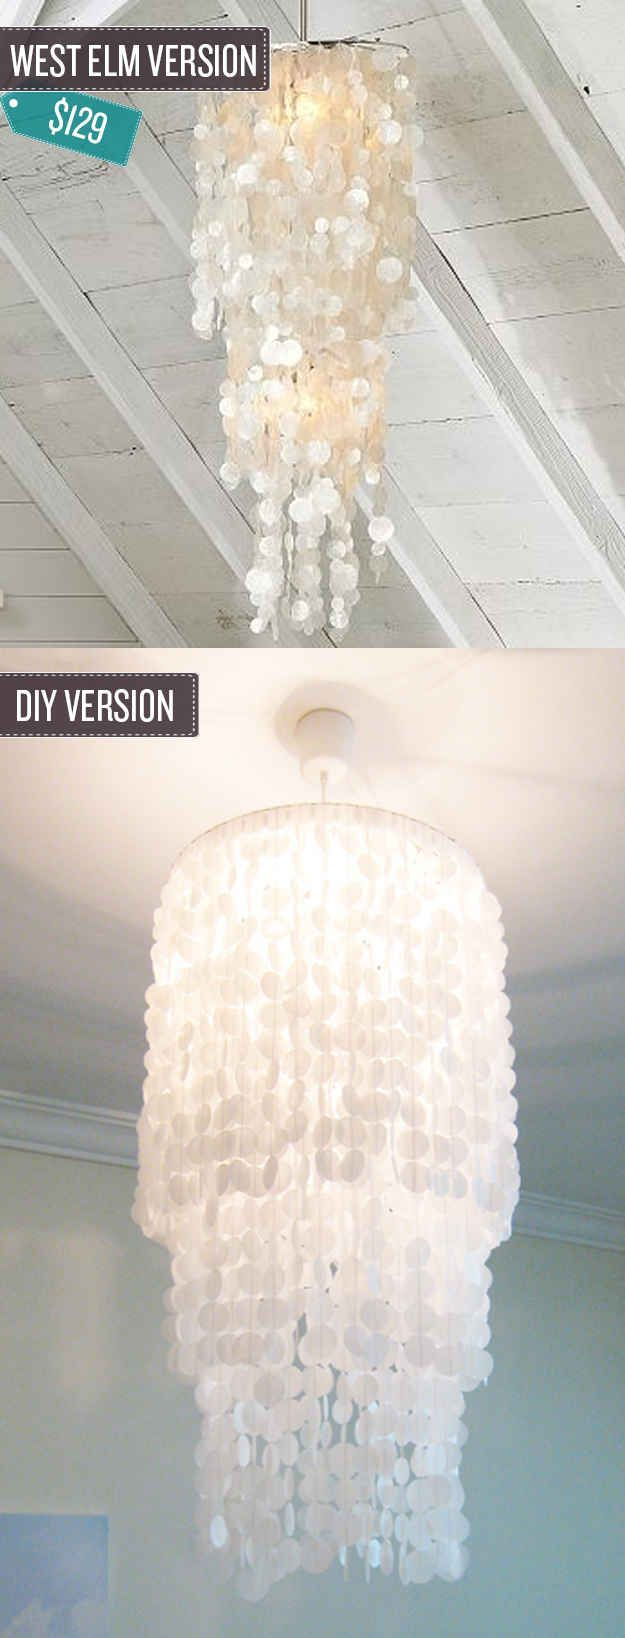 234 best very cool diy light fixtures images on pinterest night 234 best very cool diy light fixtures images on pinterest night lamps chandeliers and home ideas arubaitofo Image collections